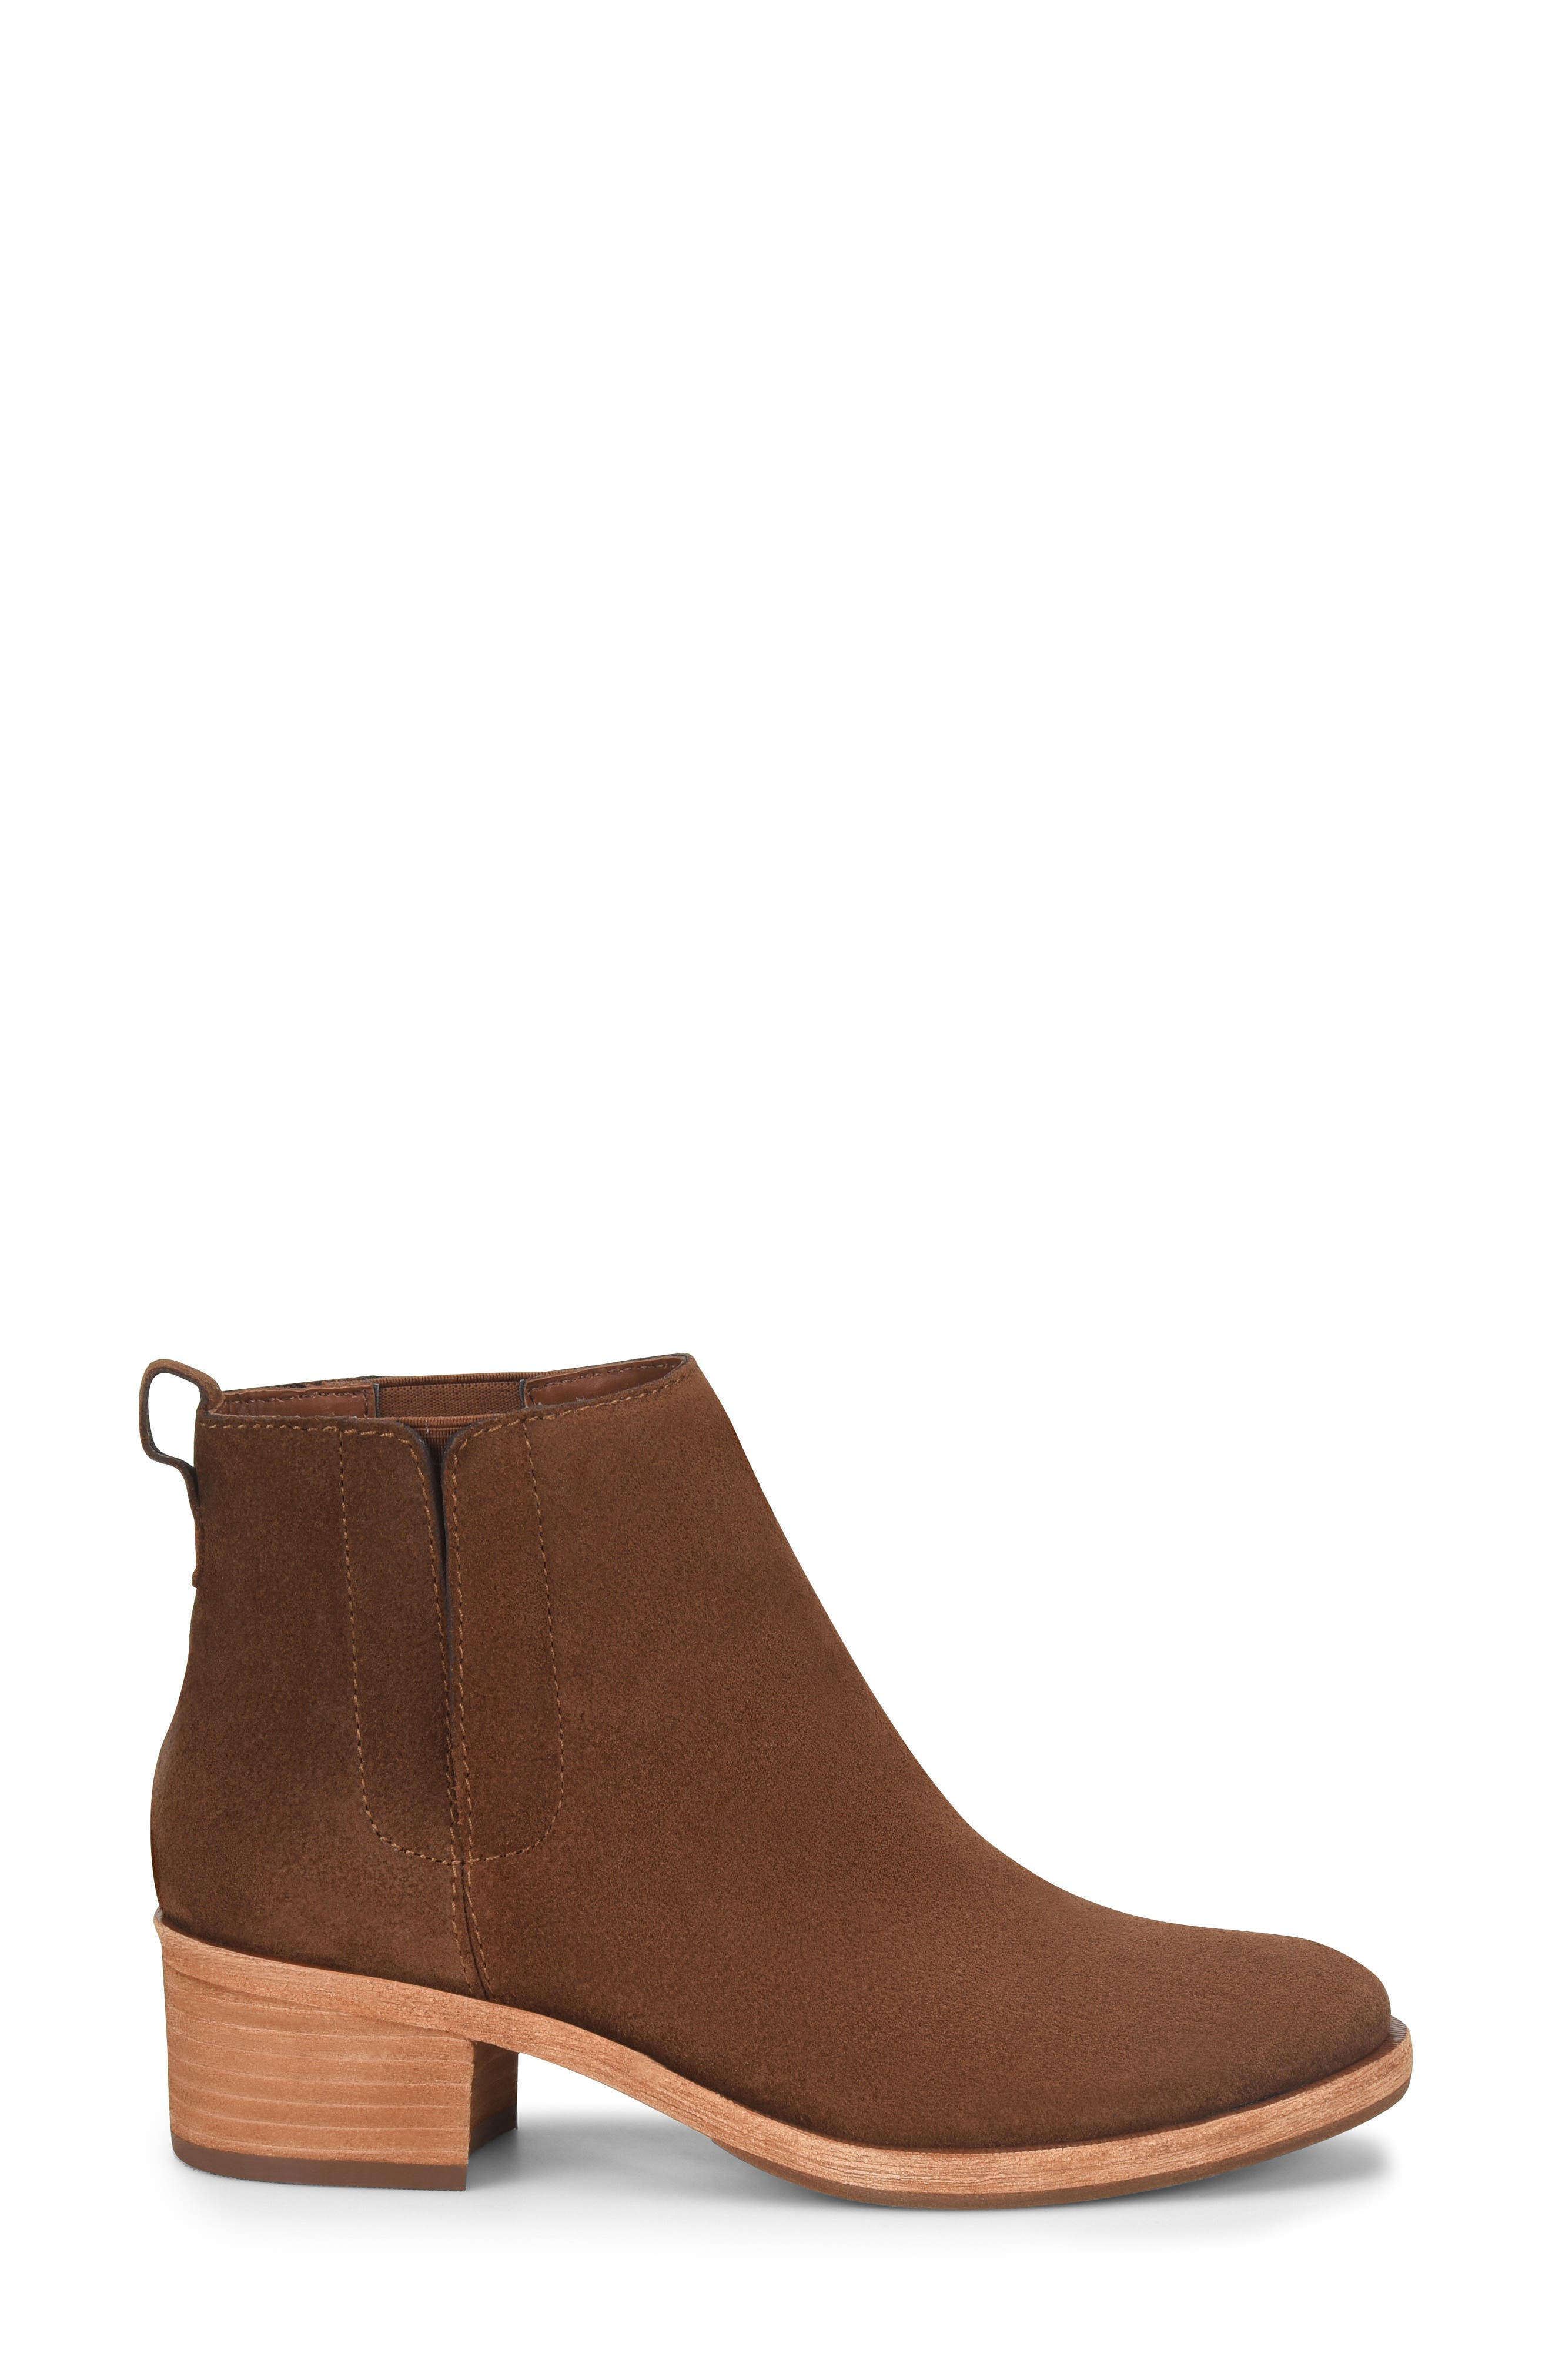 Mindo Chelsea Bootie,                             Alternate thumbnail 3, color,                             BROWN SUEDE